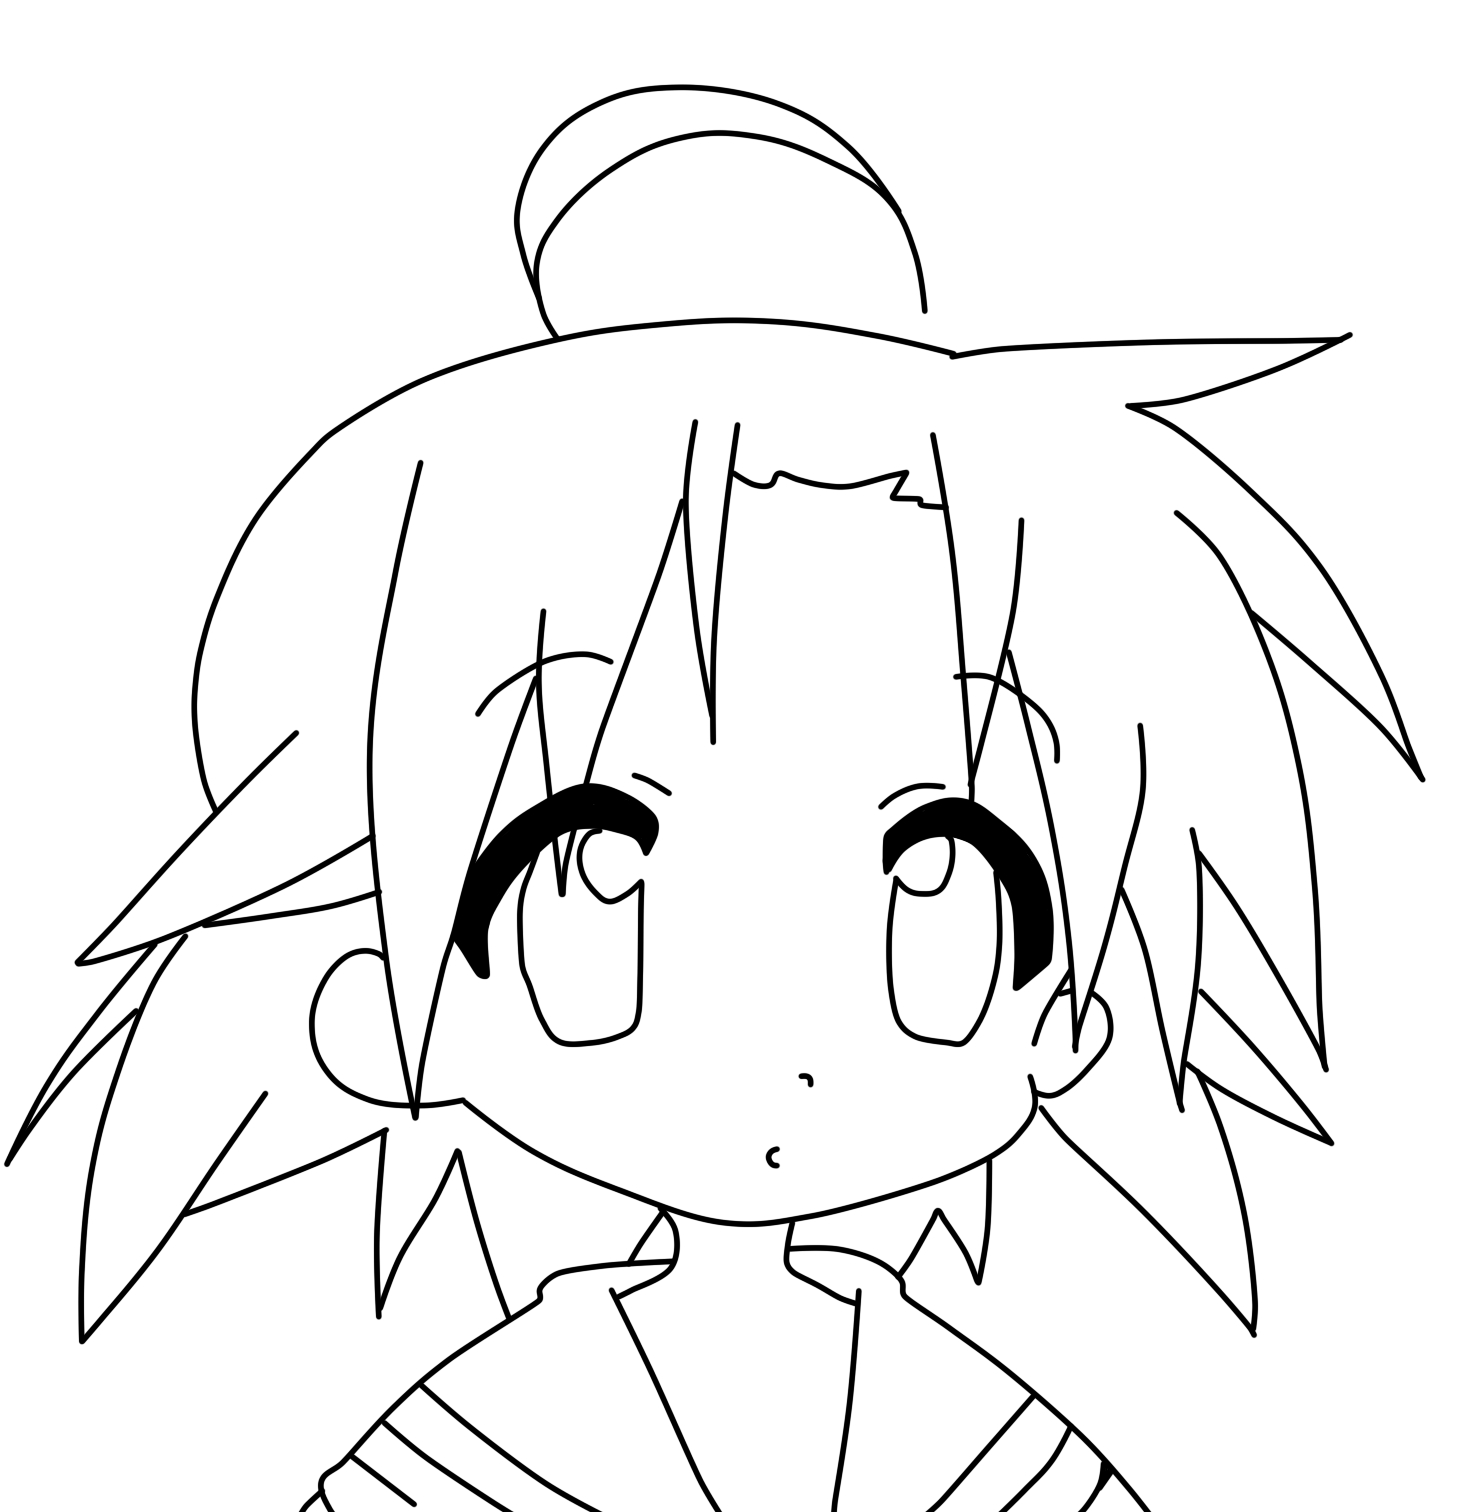 Lucky Star Coloring Pages  Star coloring pages, Coloring pages